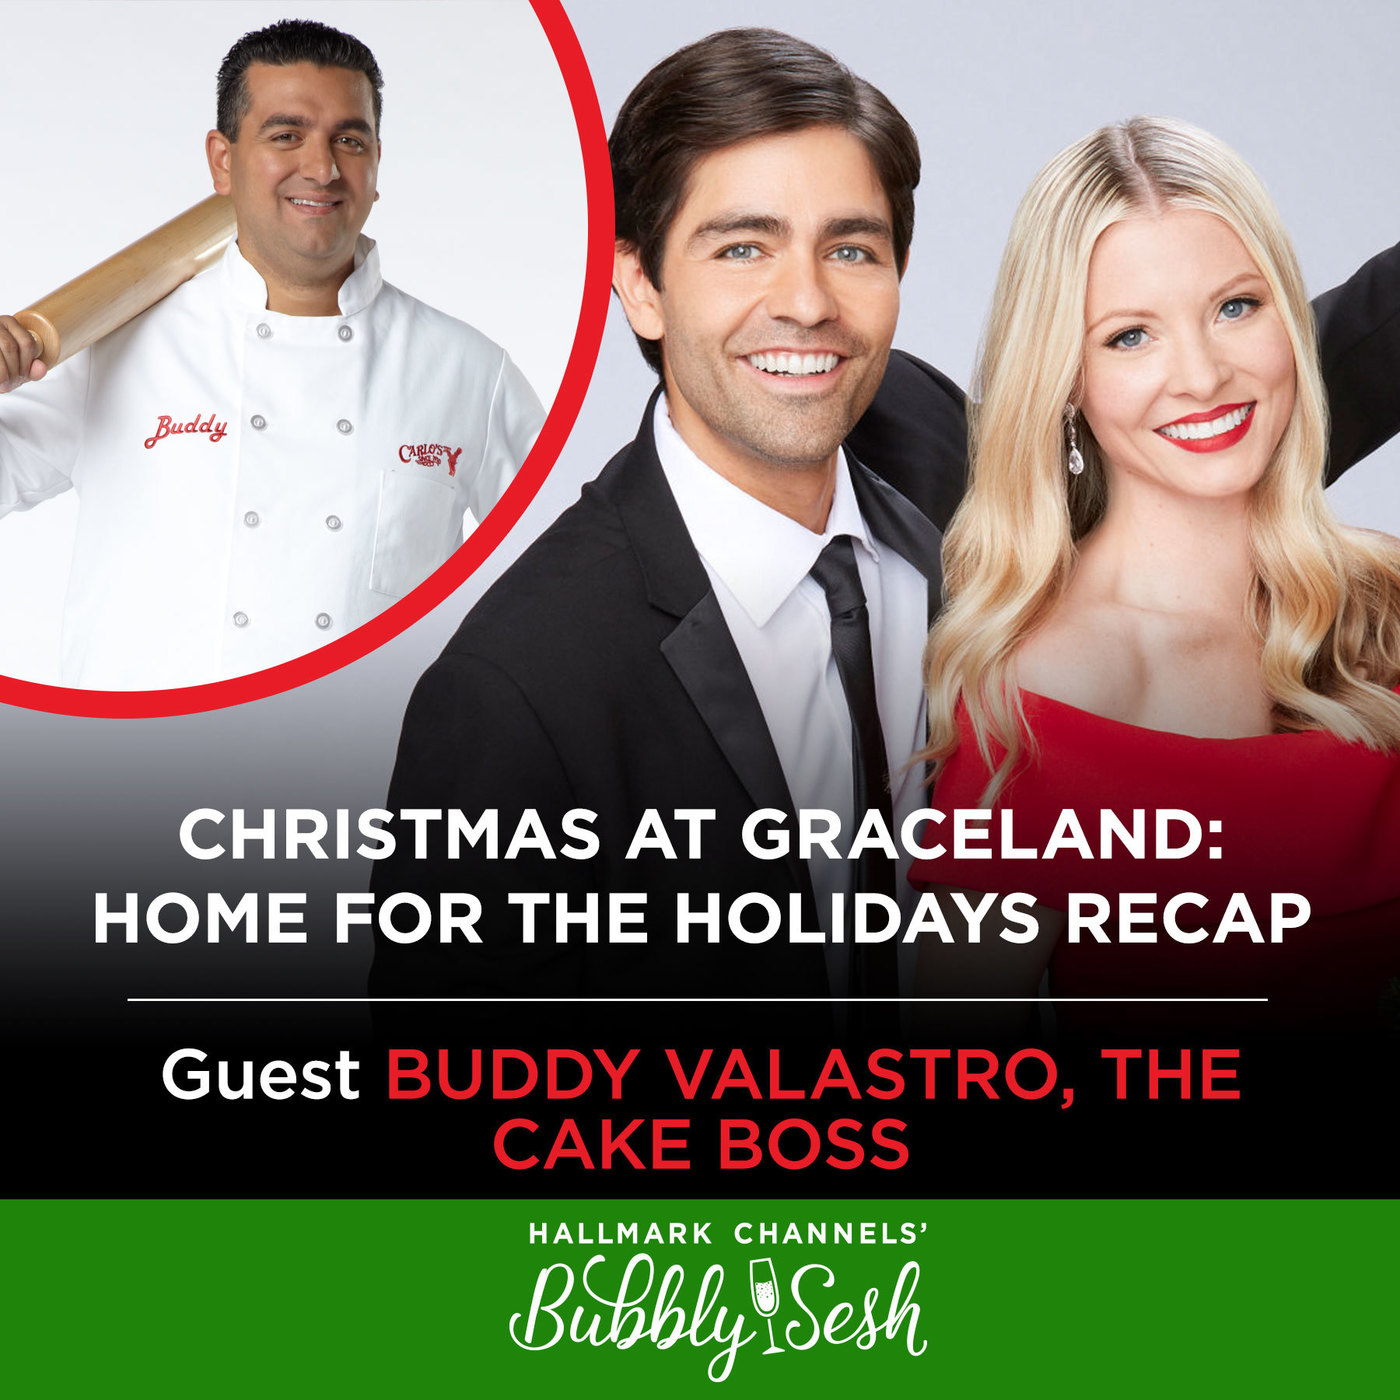 Christmas at Graceland: Home for the Holidays with The Cake Boss, Buddy Valastro